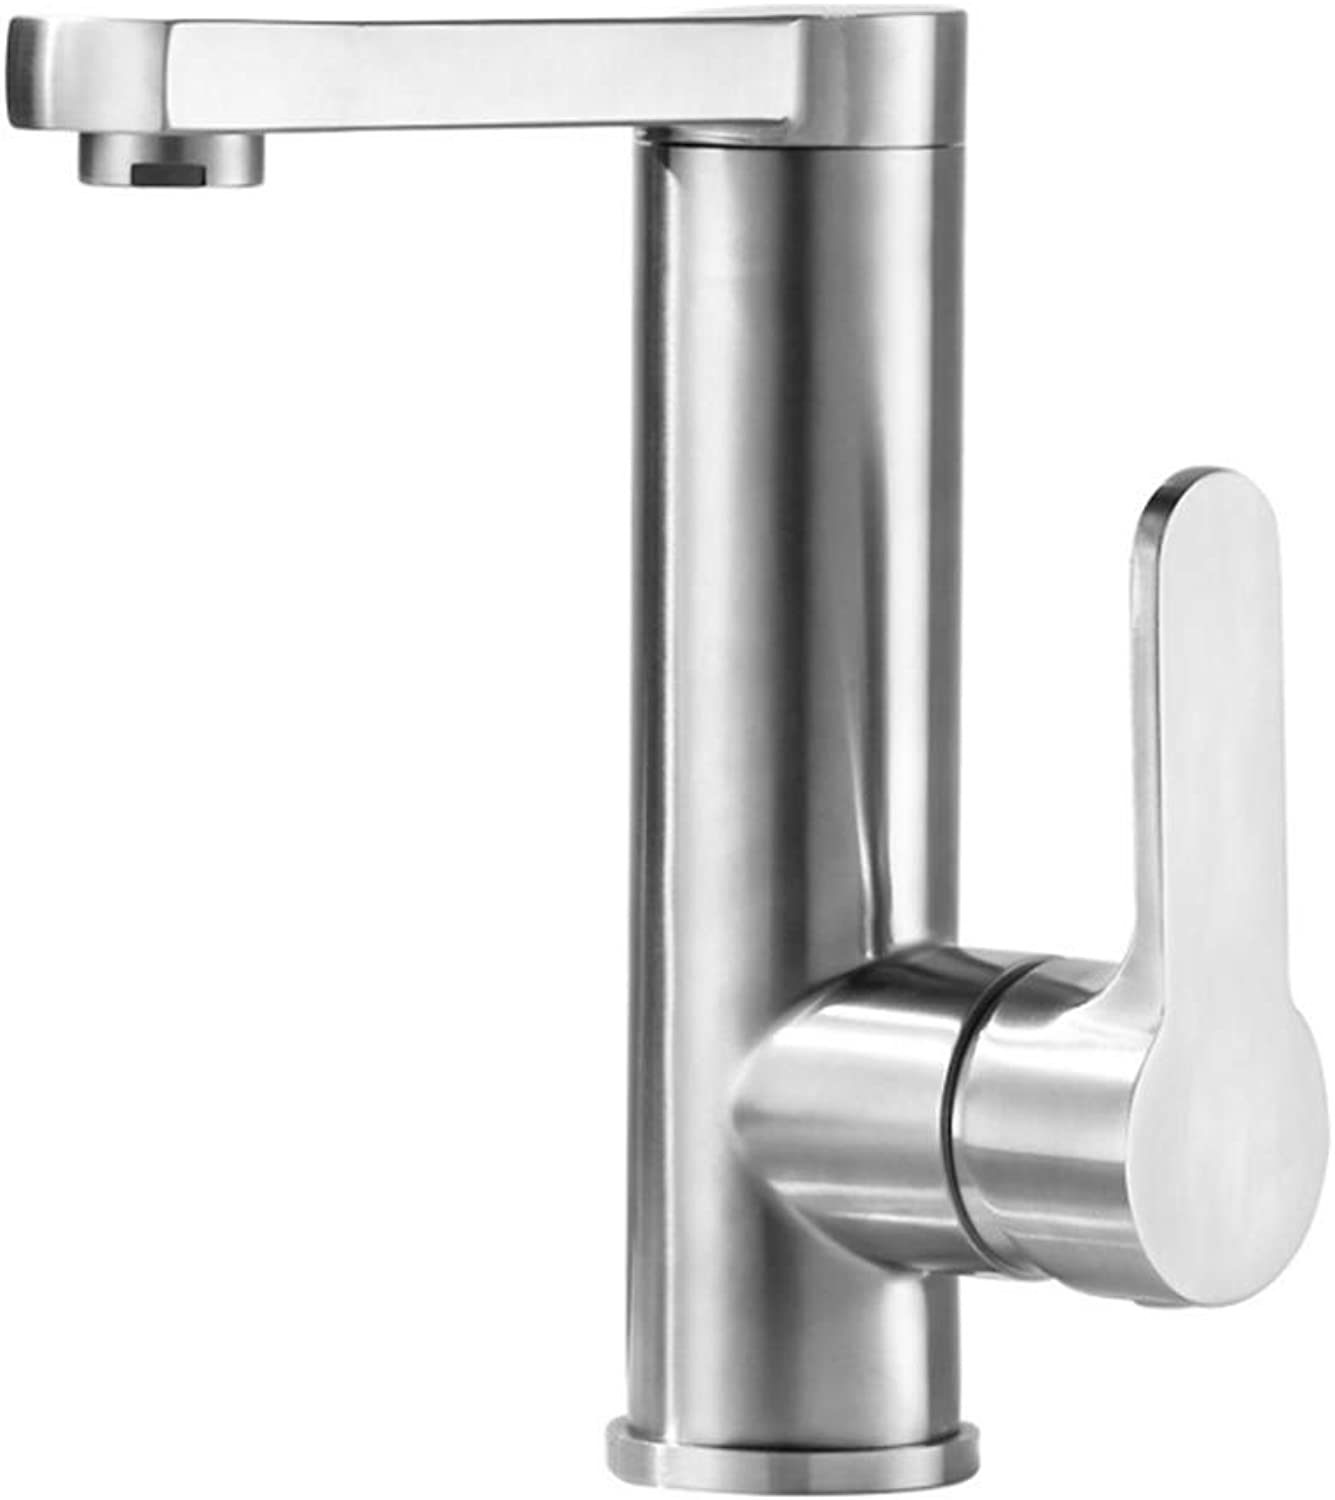 Kitchen Taps Faucet Modern Kitchen Sink Taps Stainless Steelhot and Cold Washbasin Faucet Bathroom Table Basin Faucet